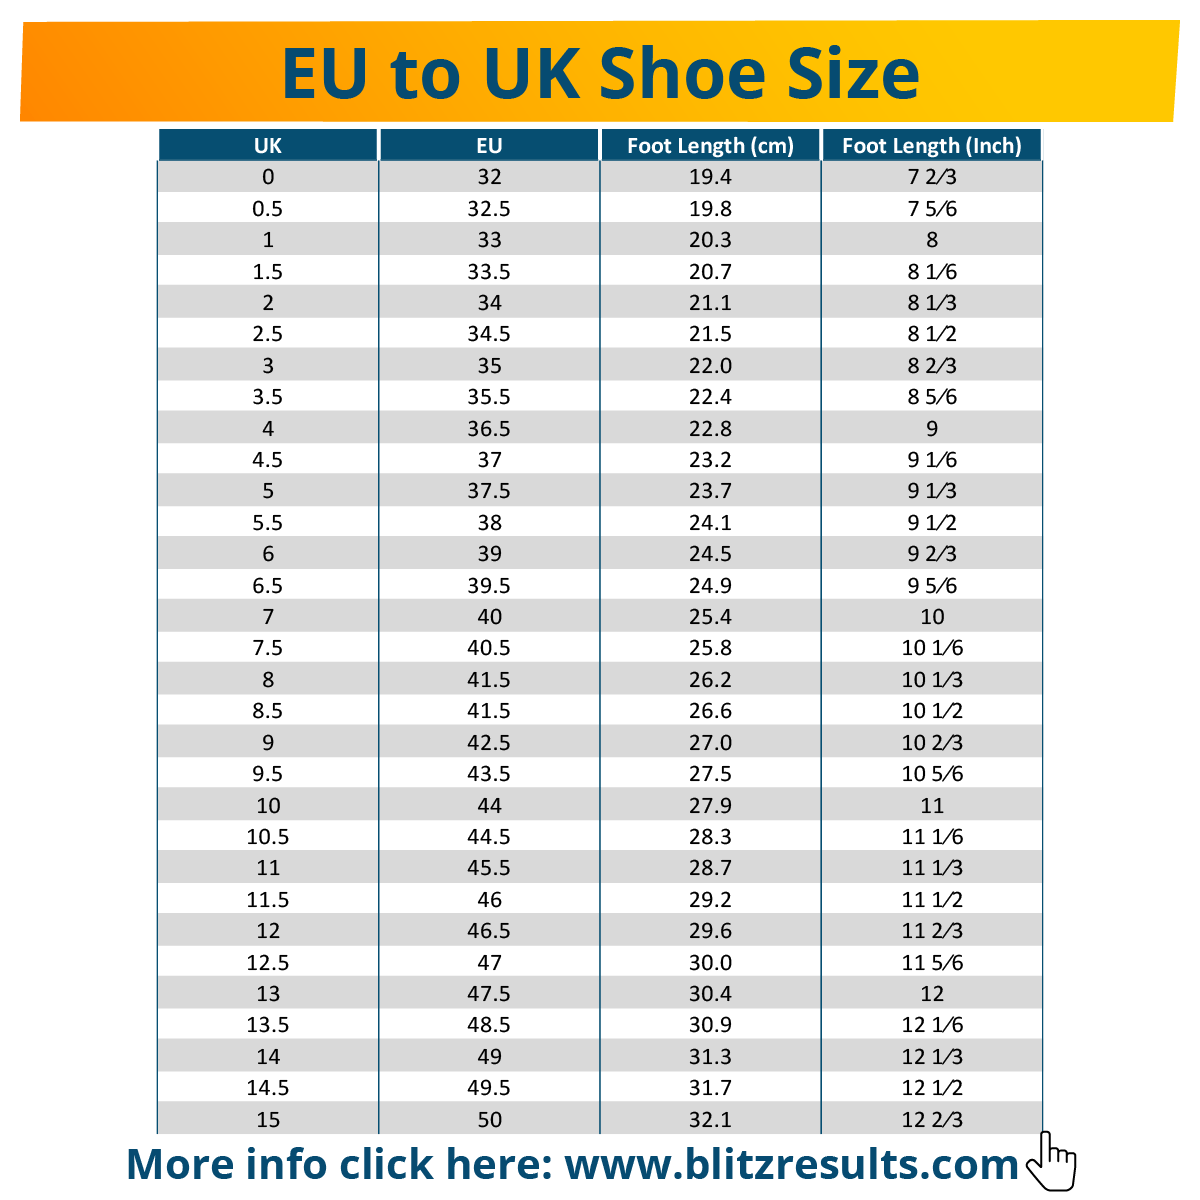 ᐅ Eu To Uk Shoe Size Conversion Charts For Women Men Kids